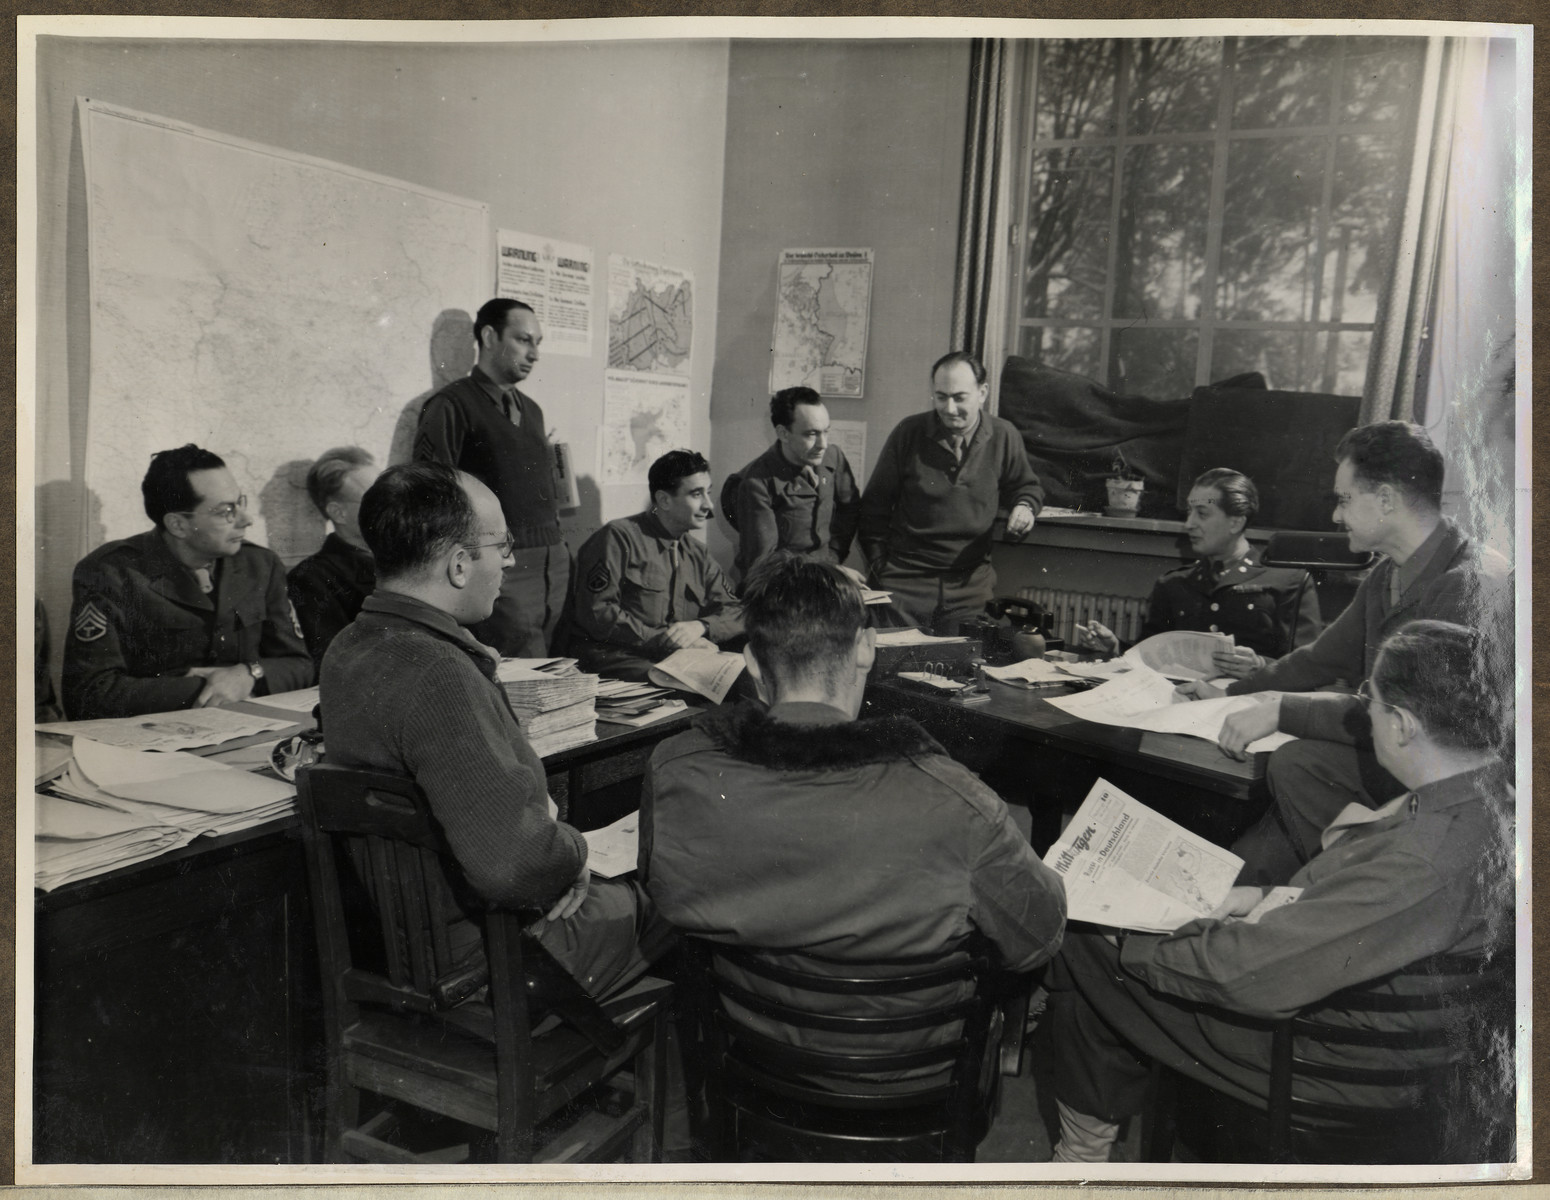 Members of the American Communications Unit responsible for writing newspapers for distribution in Germany meet for an editorial conference in The Habe Circus in Luxembourg.  Joseph Eaton is pictured in profile on the far right.